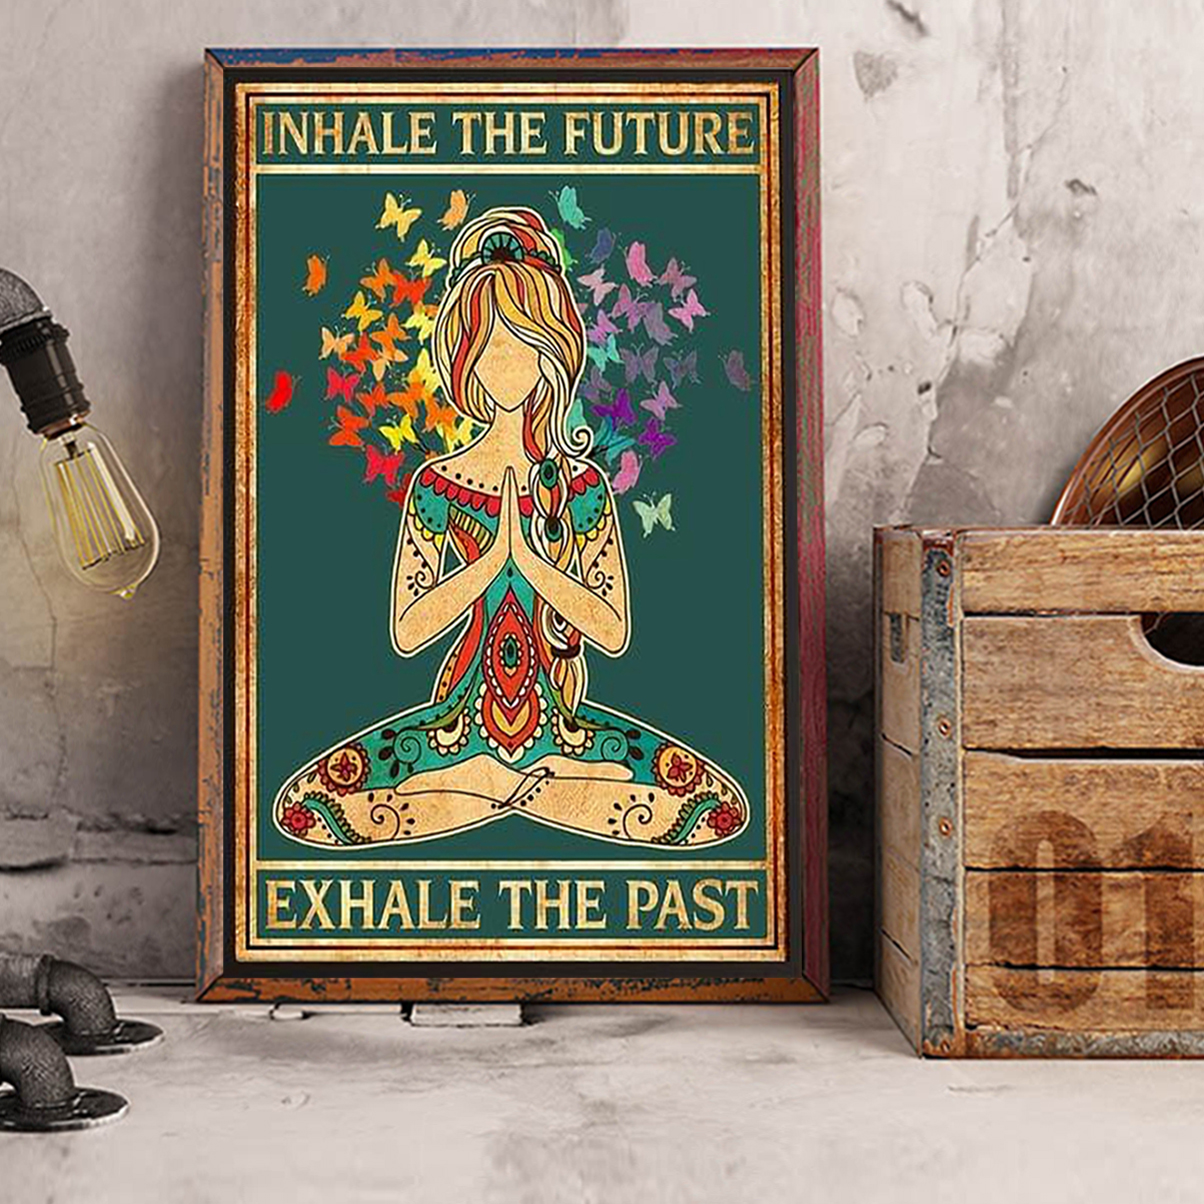 Inhale the future exhale the past poster A2